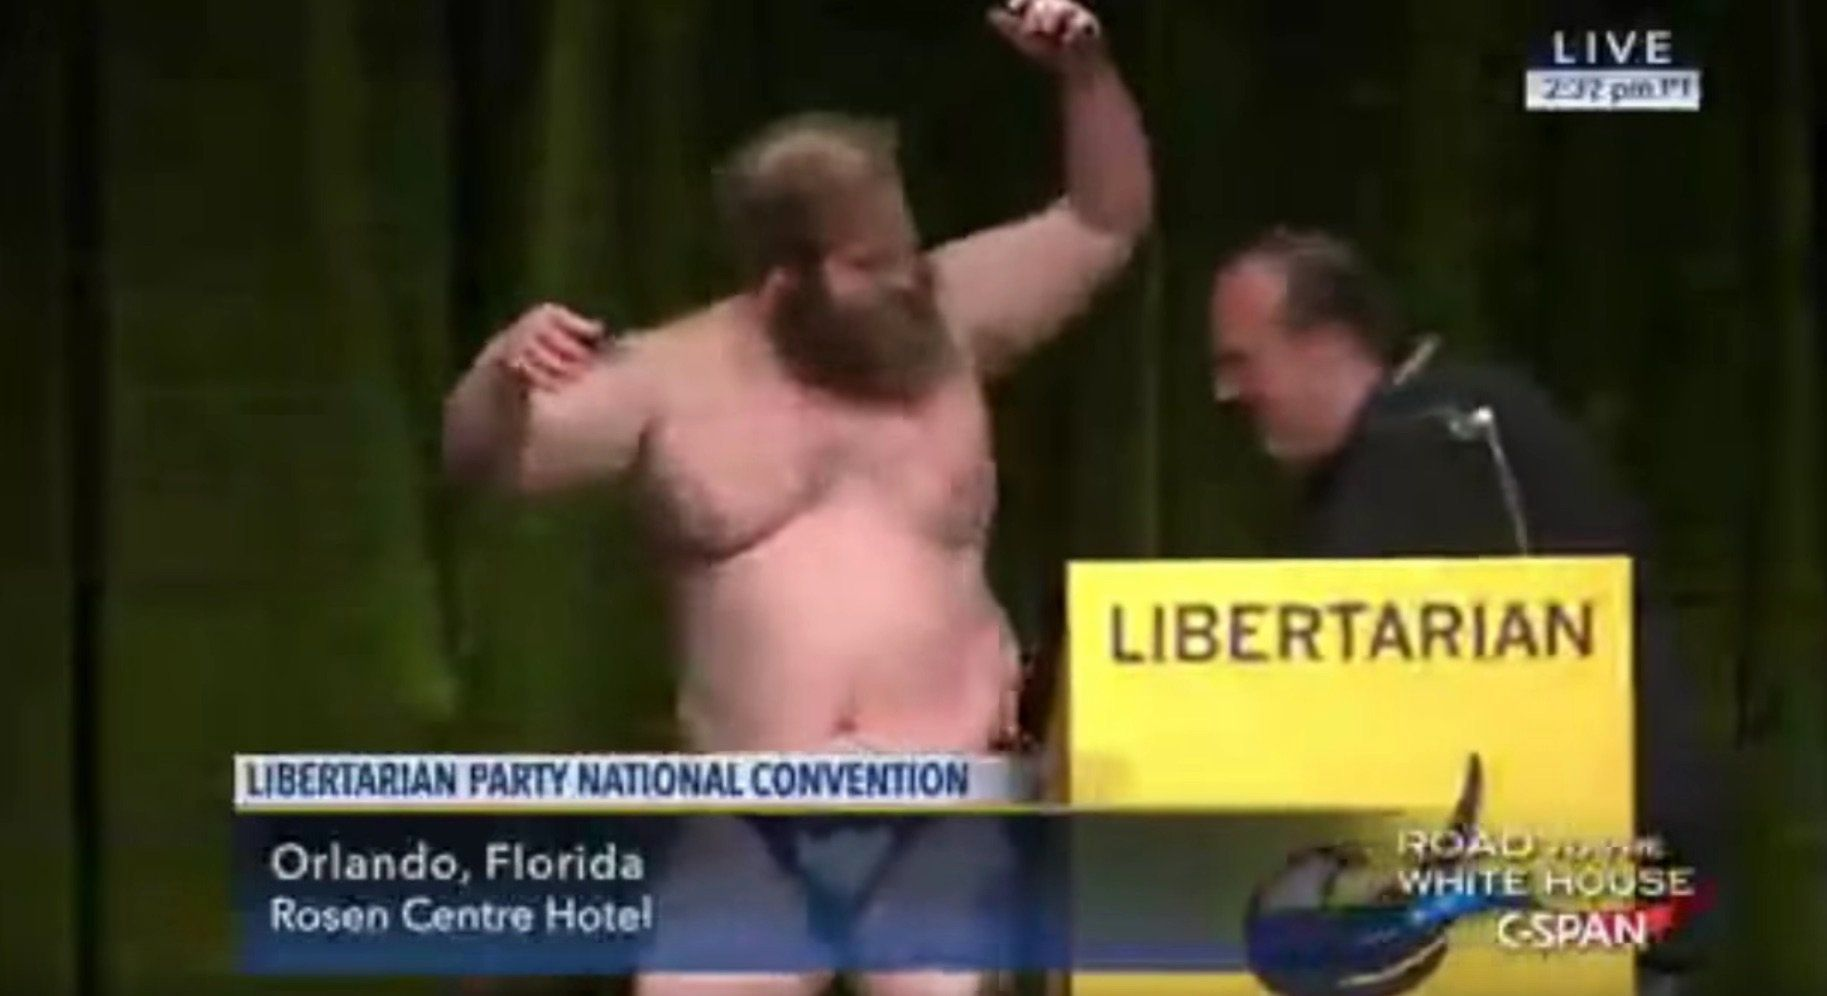 James Weeks strips at Libertarian Convention.